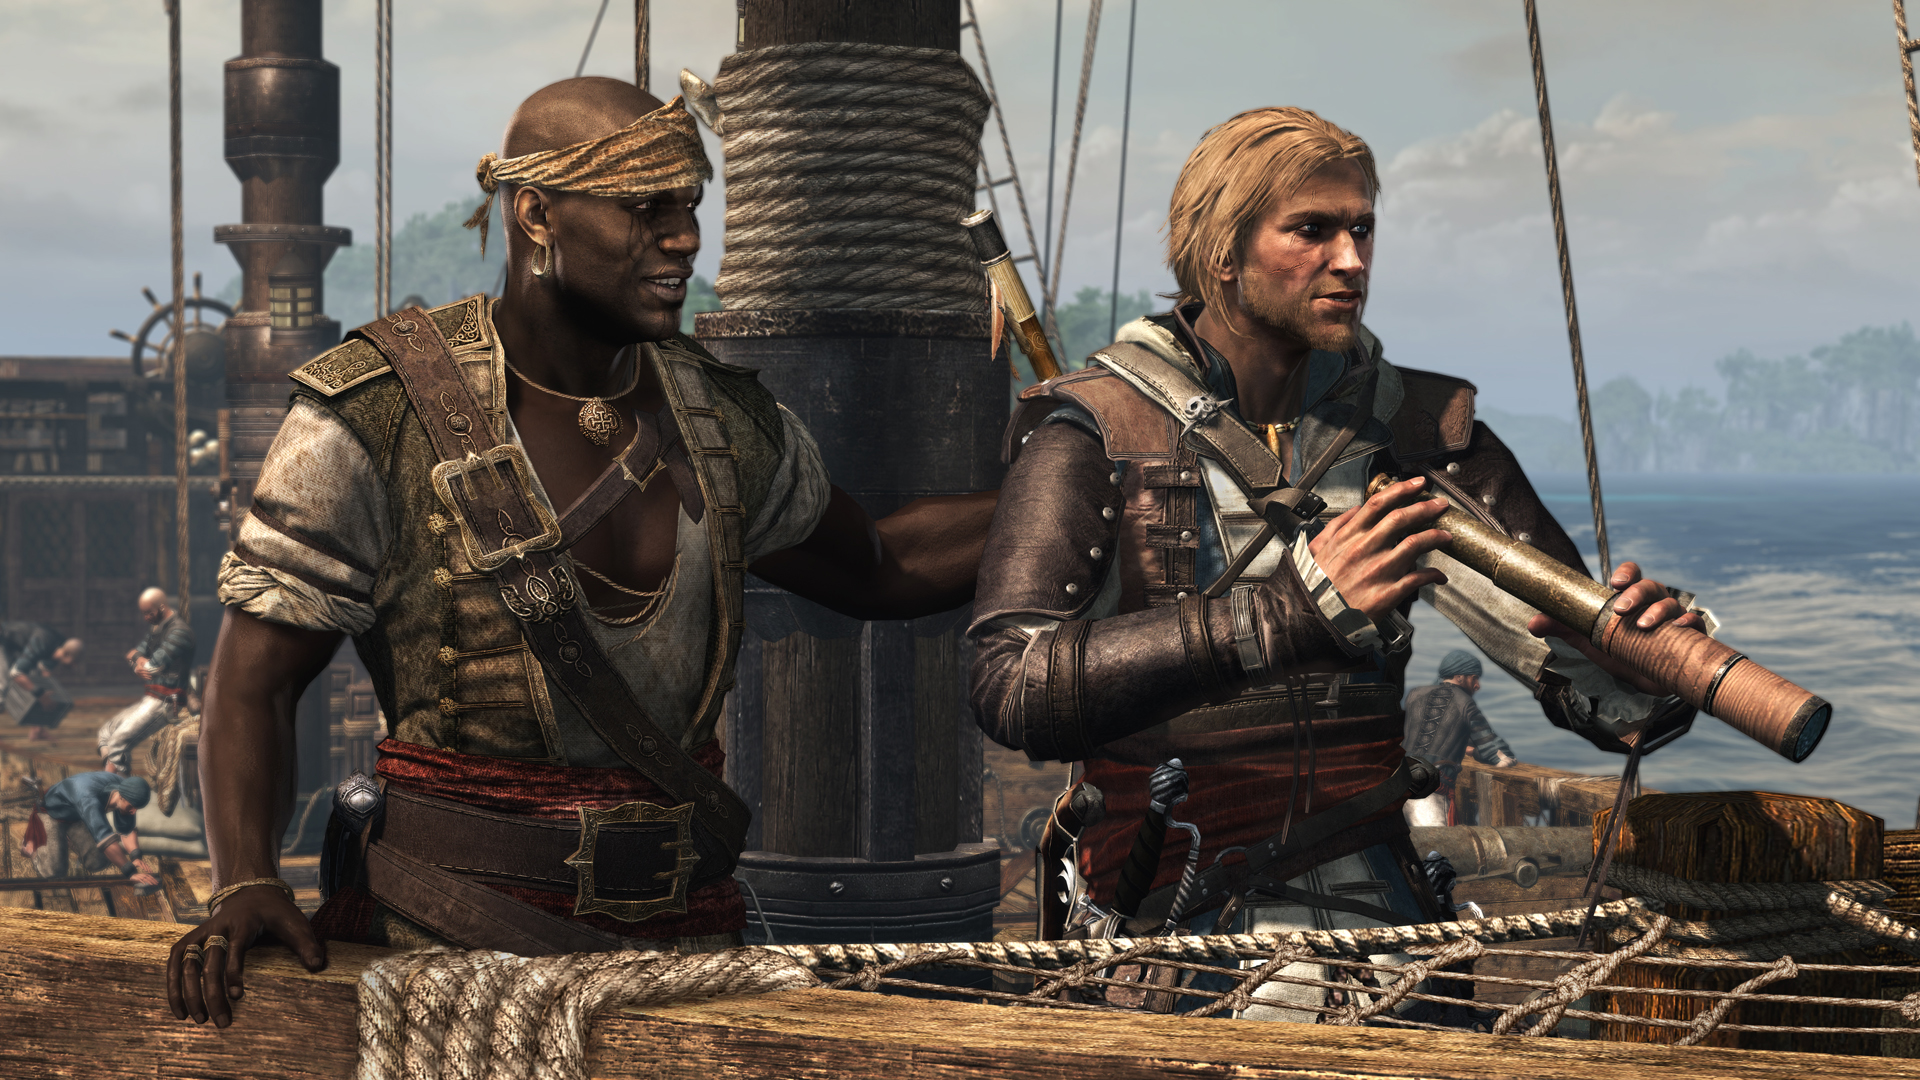 Assassin's Creed IV - that release date be gainin' on us cap'n!